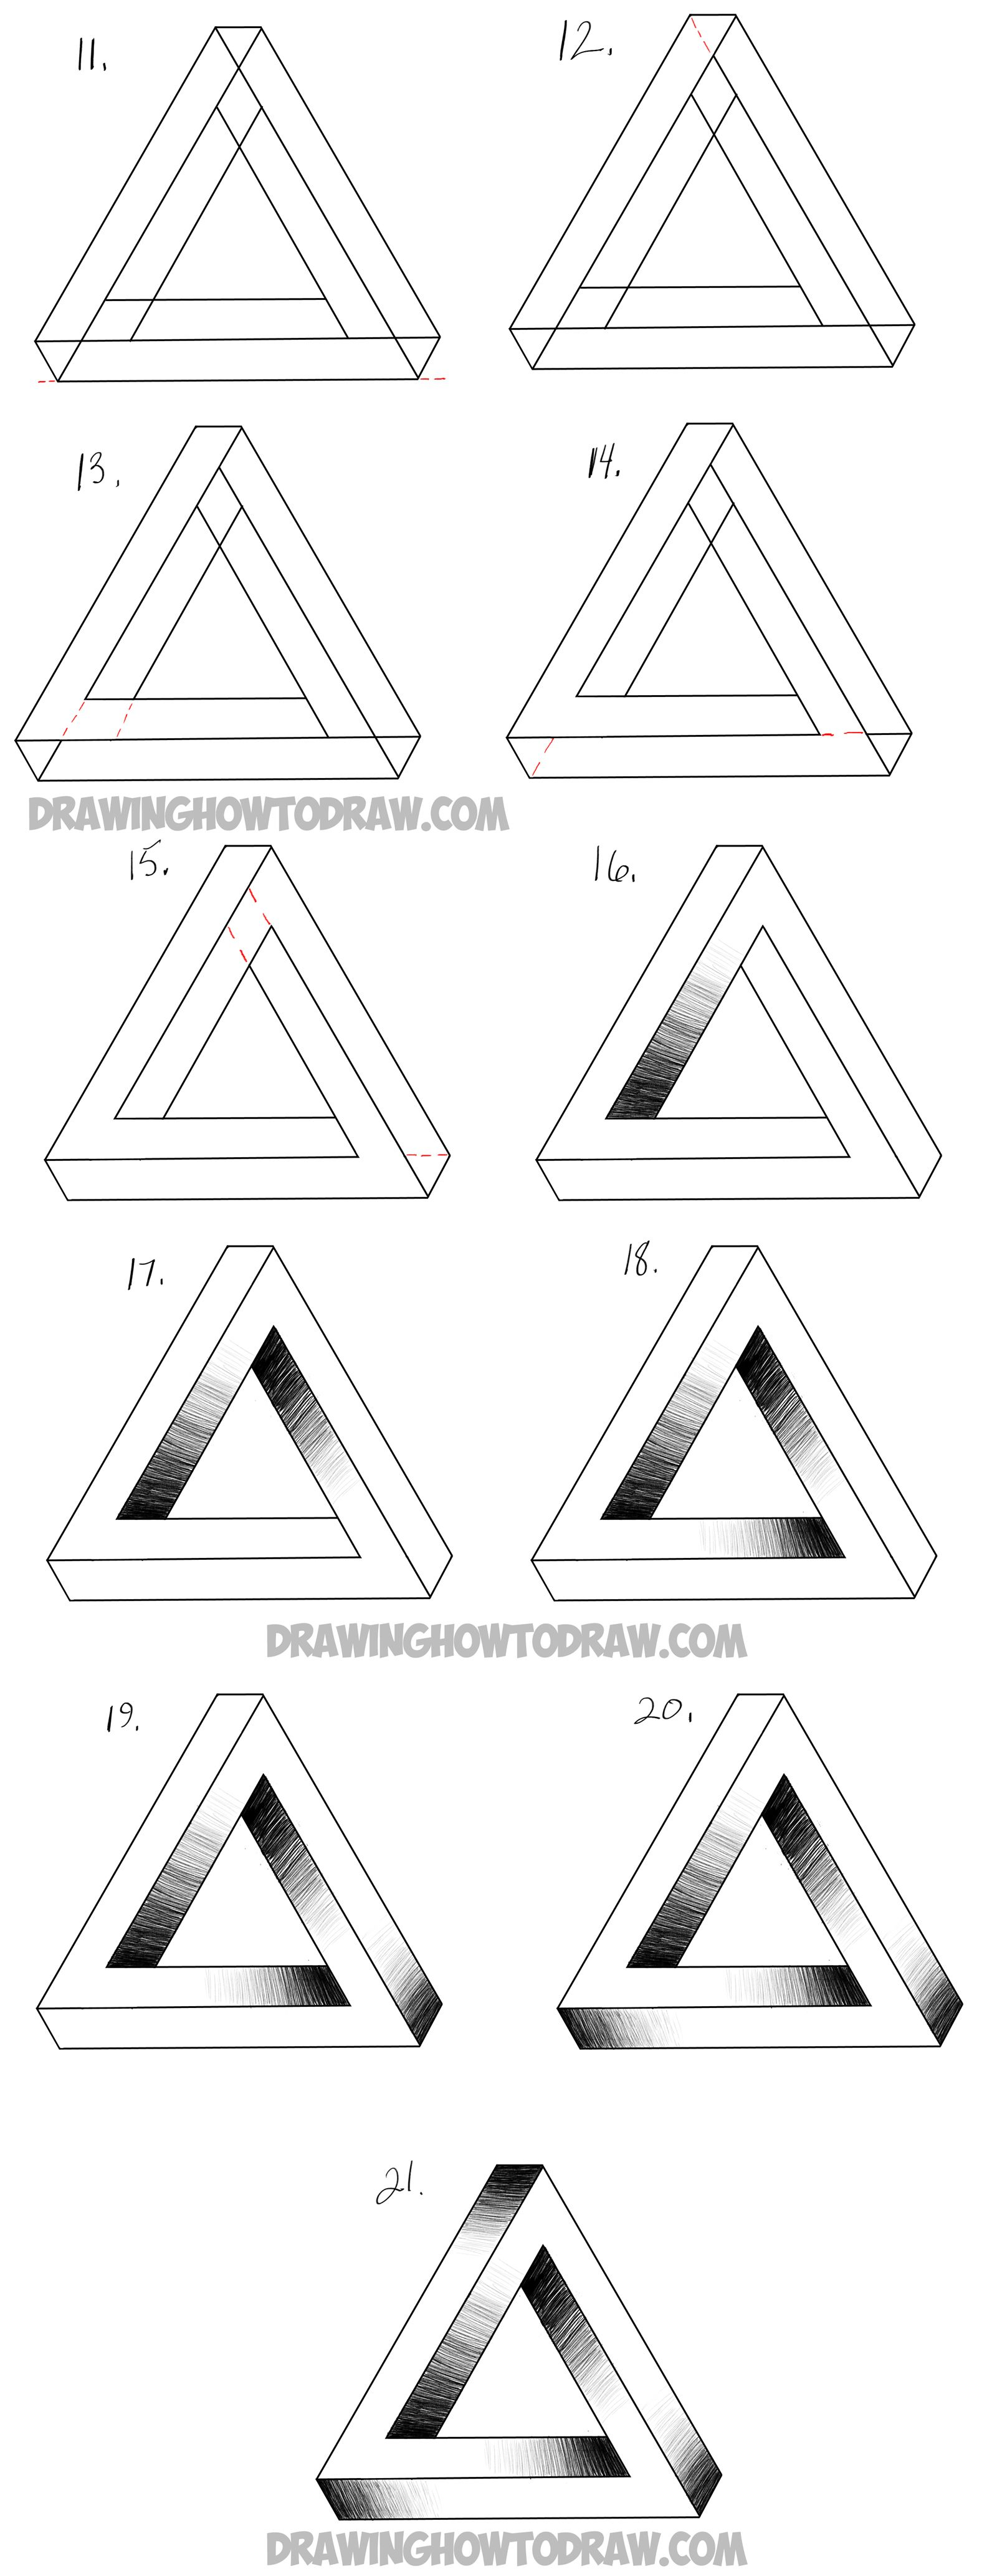 How To Draw An Impossible Triangle Easy Step By Step